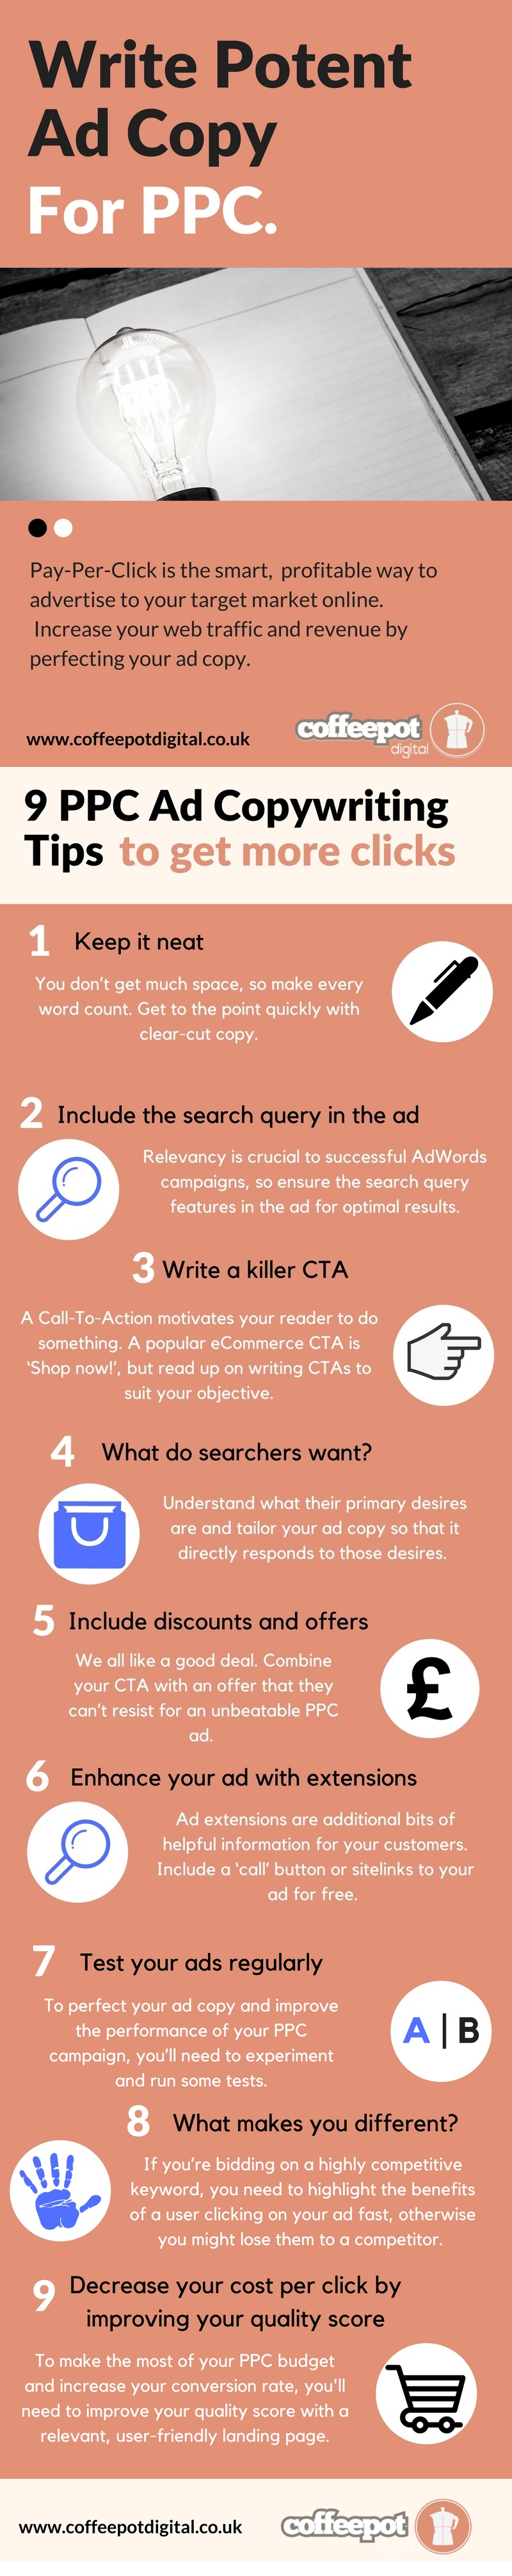 How to write ad copy for adwords